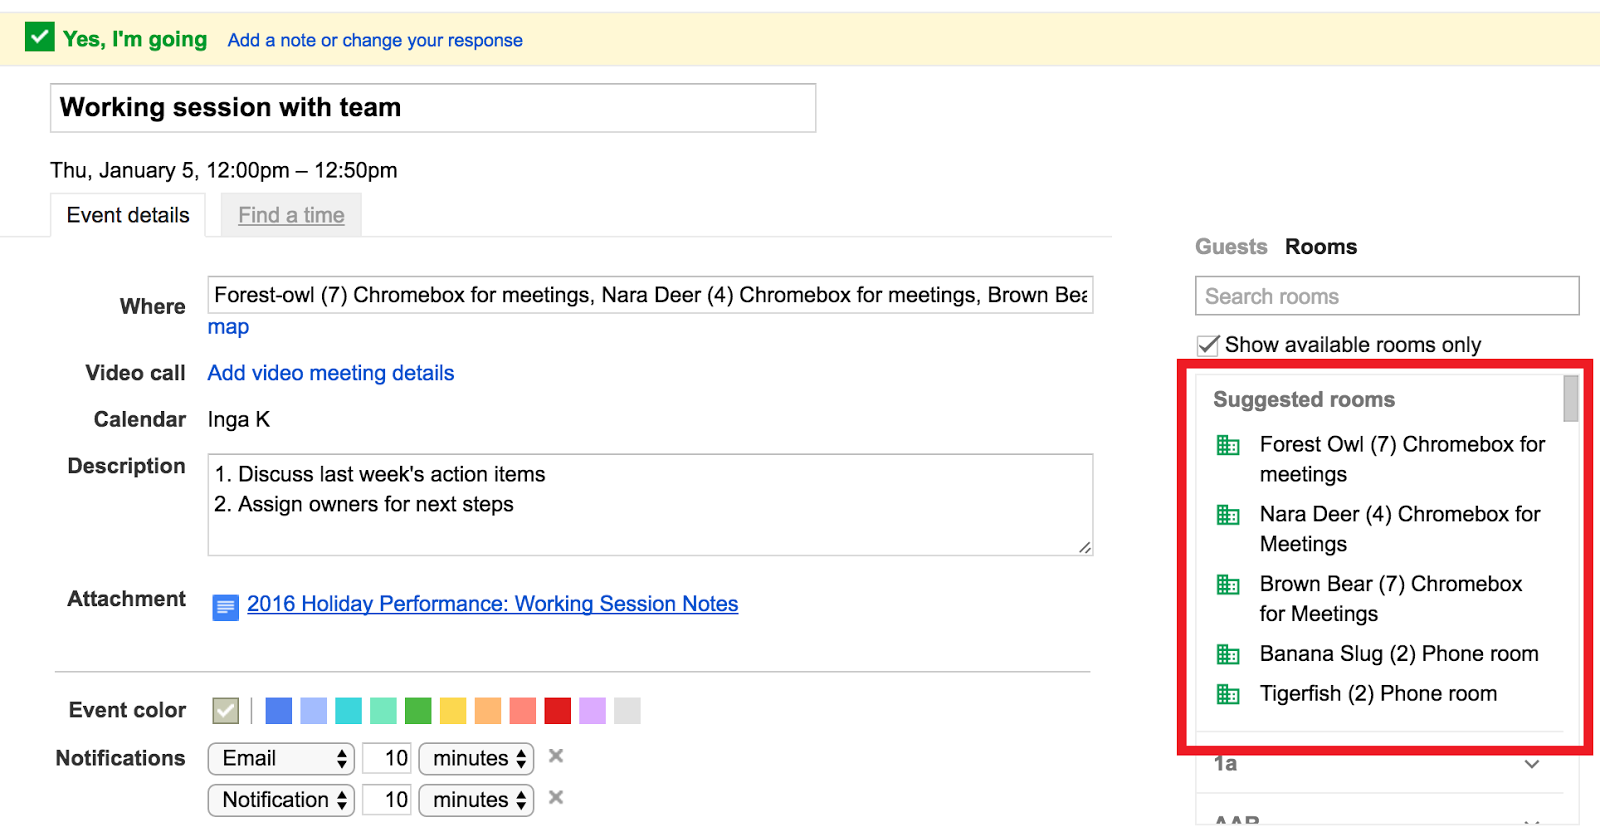 G Suite Updates Blog: Smarter meeting scheduling in Google Calendar